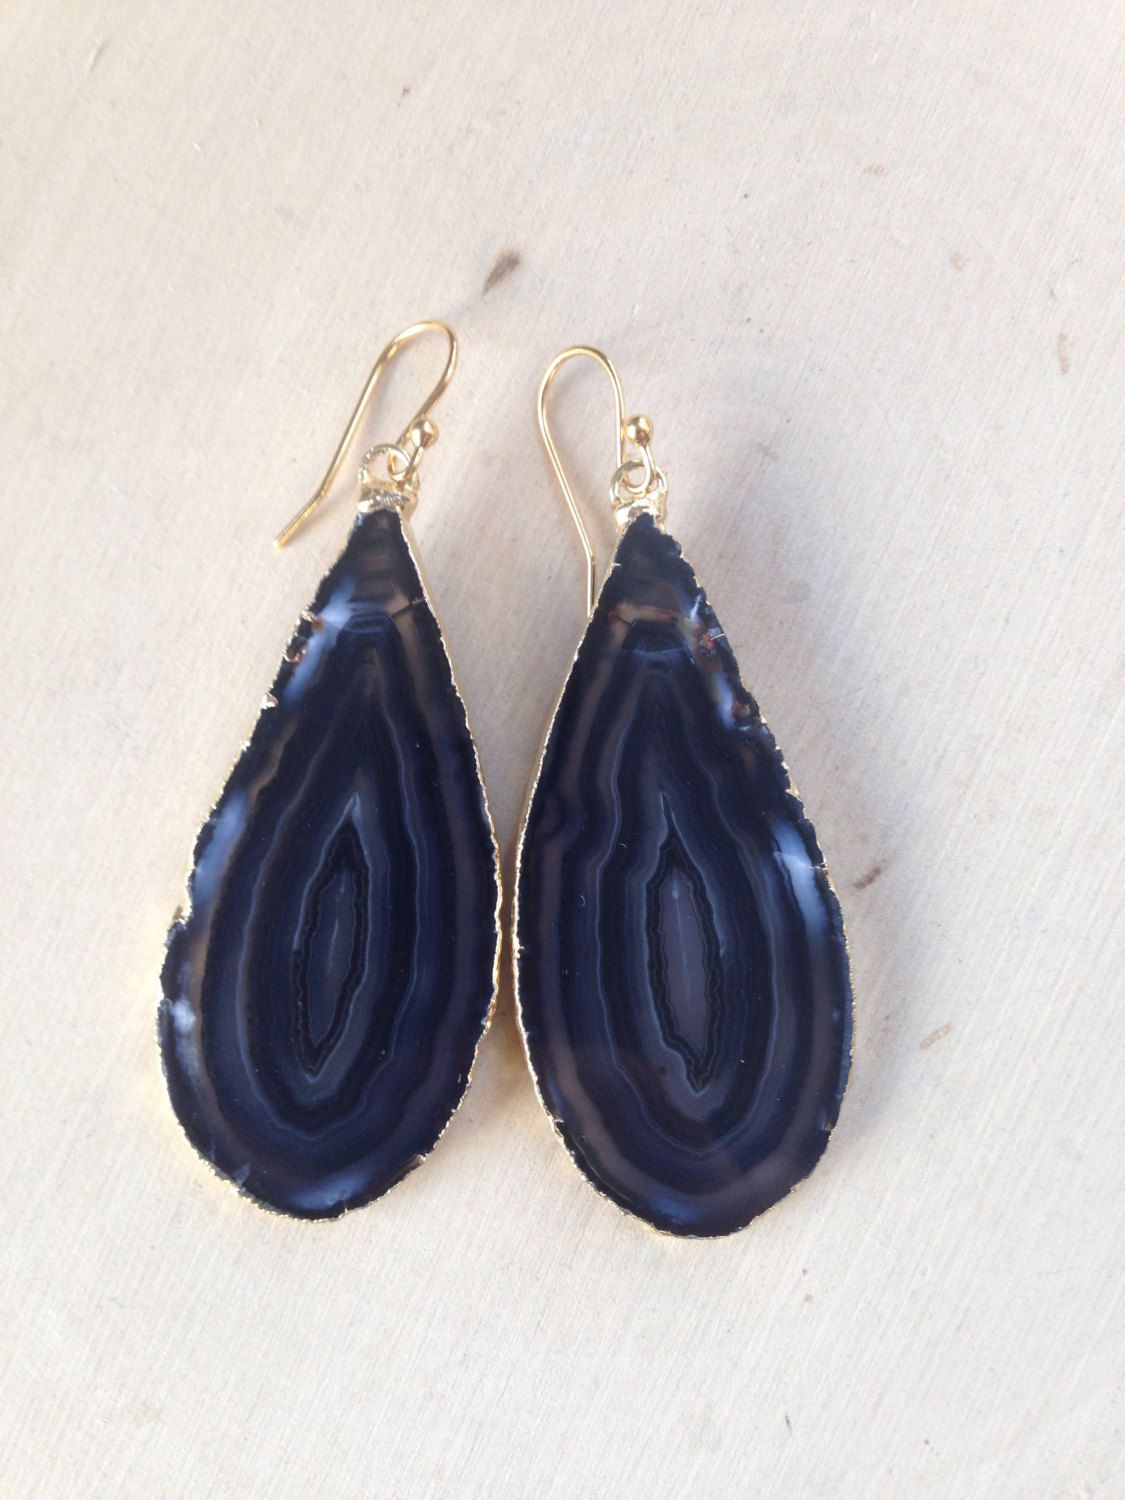 Agate Earrings Gold Dipped Slice Raw Geode Gemstone Natural Black By Maliecreations On